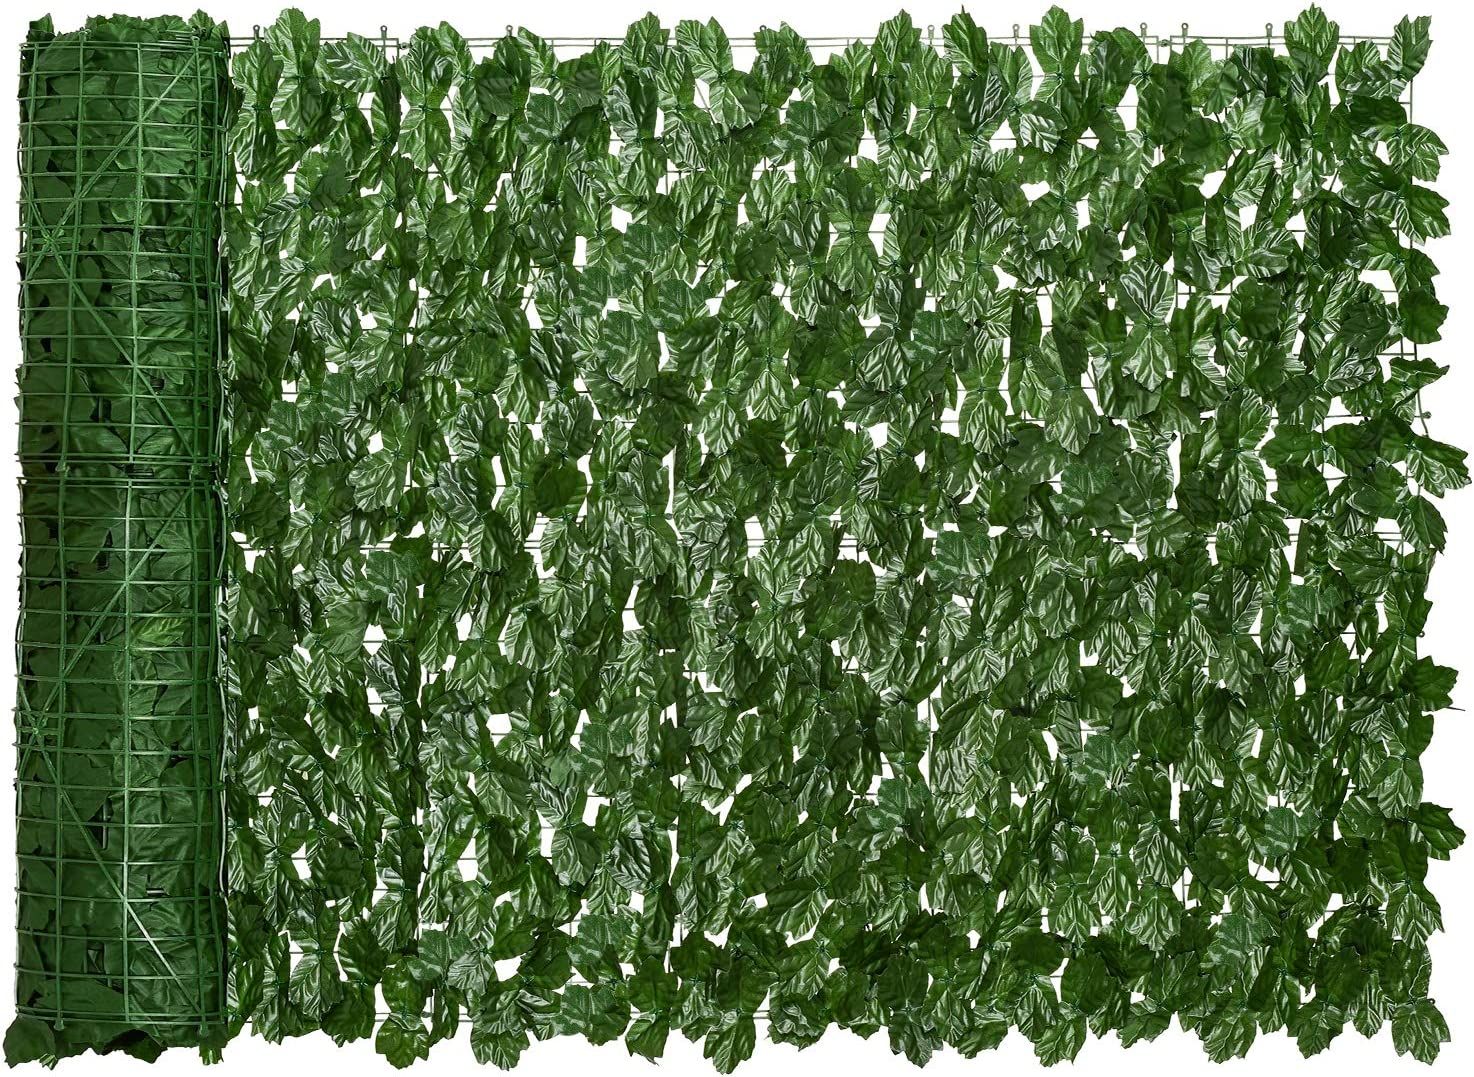 DearHouse Artificial Ivy Privacy Fence Screen, 118.1x39.3 inch Artificial Hedges Fence and Faux Ivy Vine Leaf Decoration for Outdoor Decor, Gardenecor, Garden